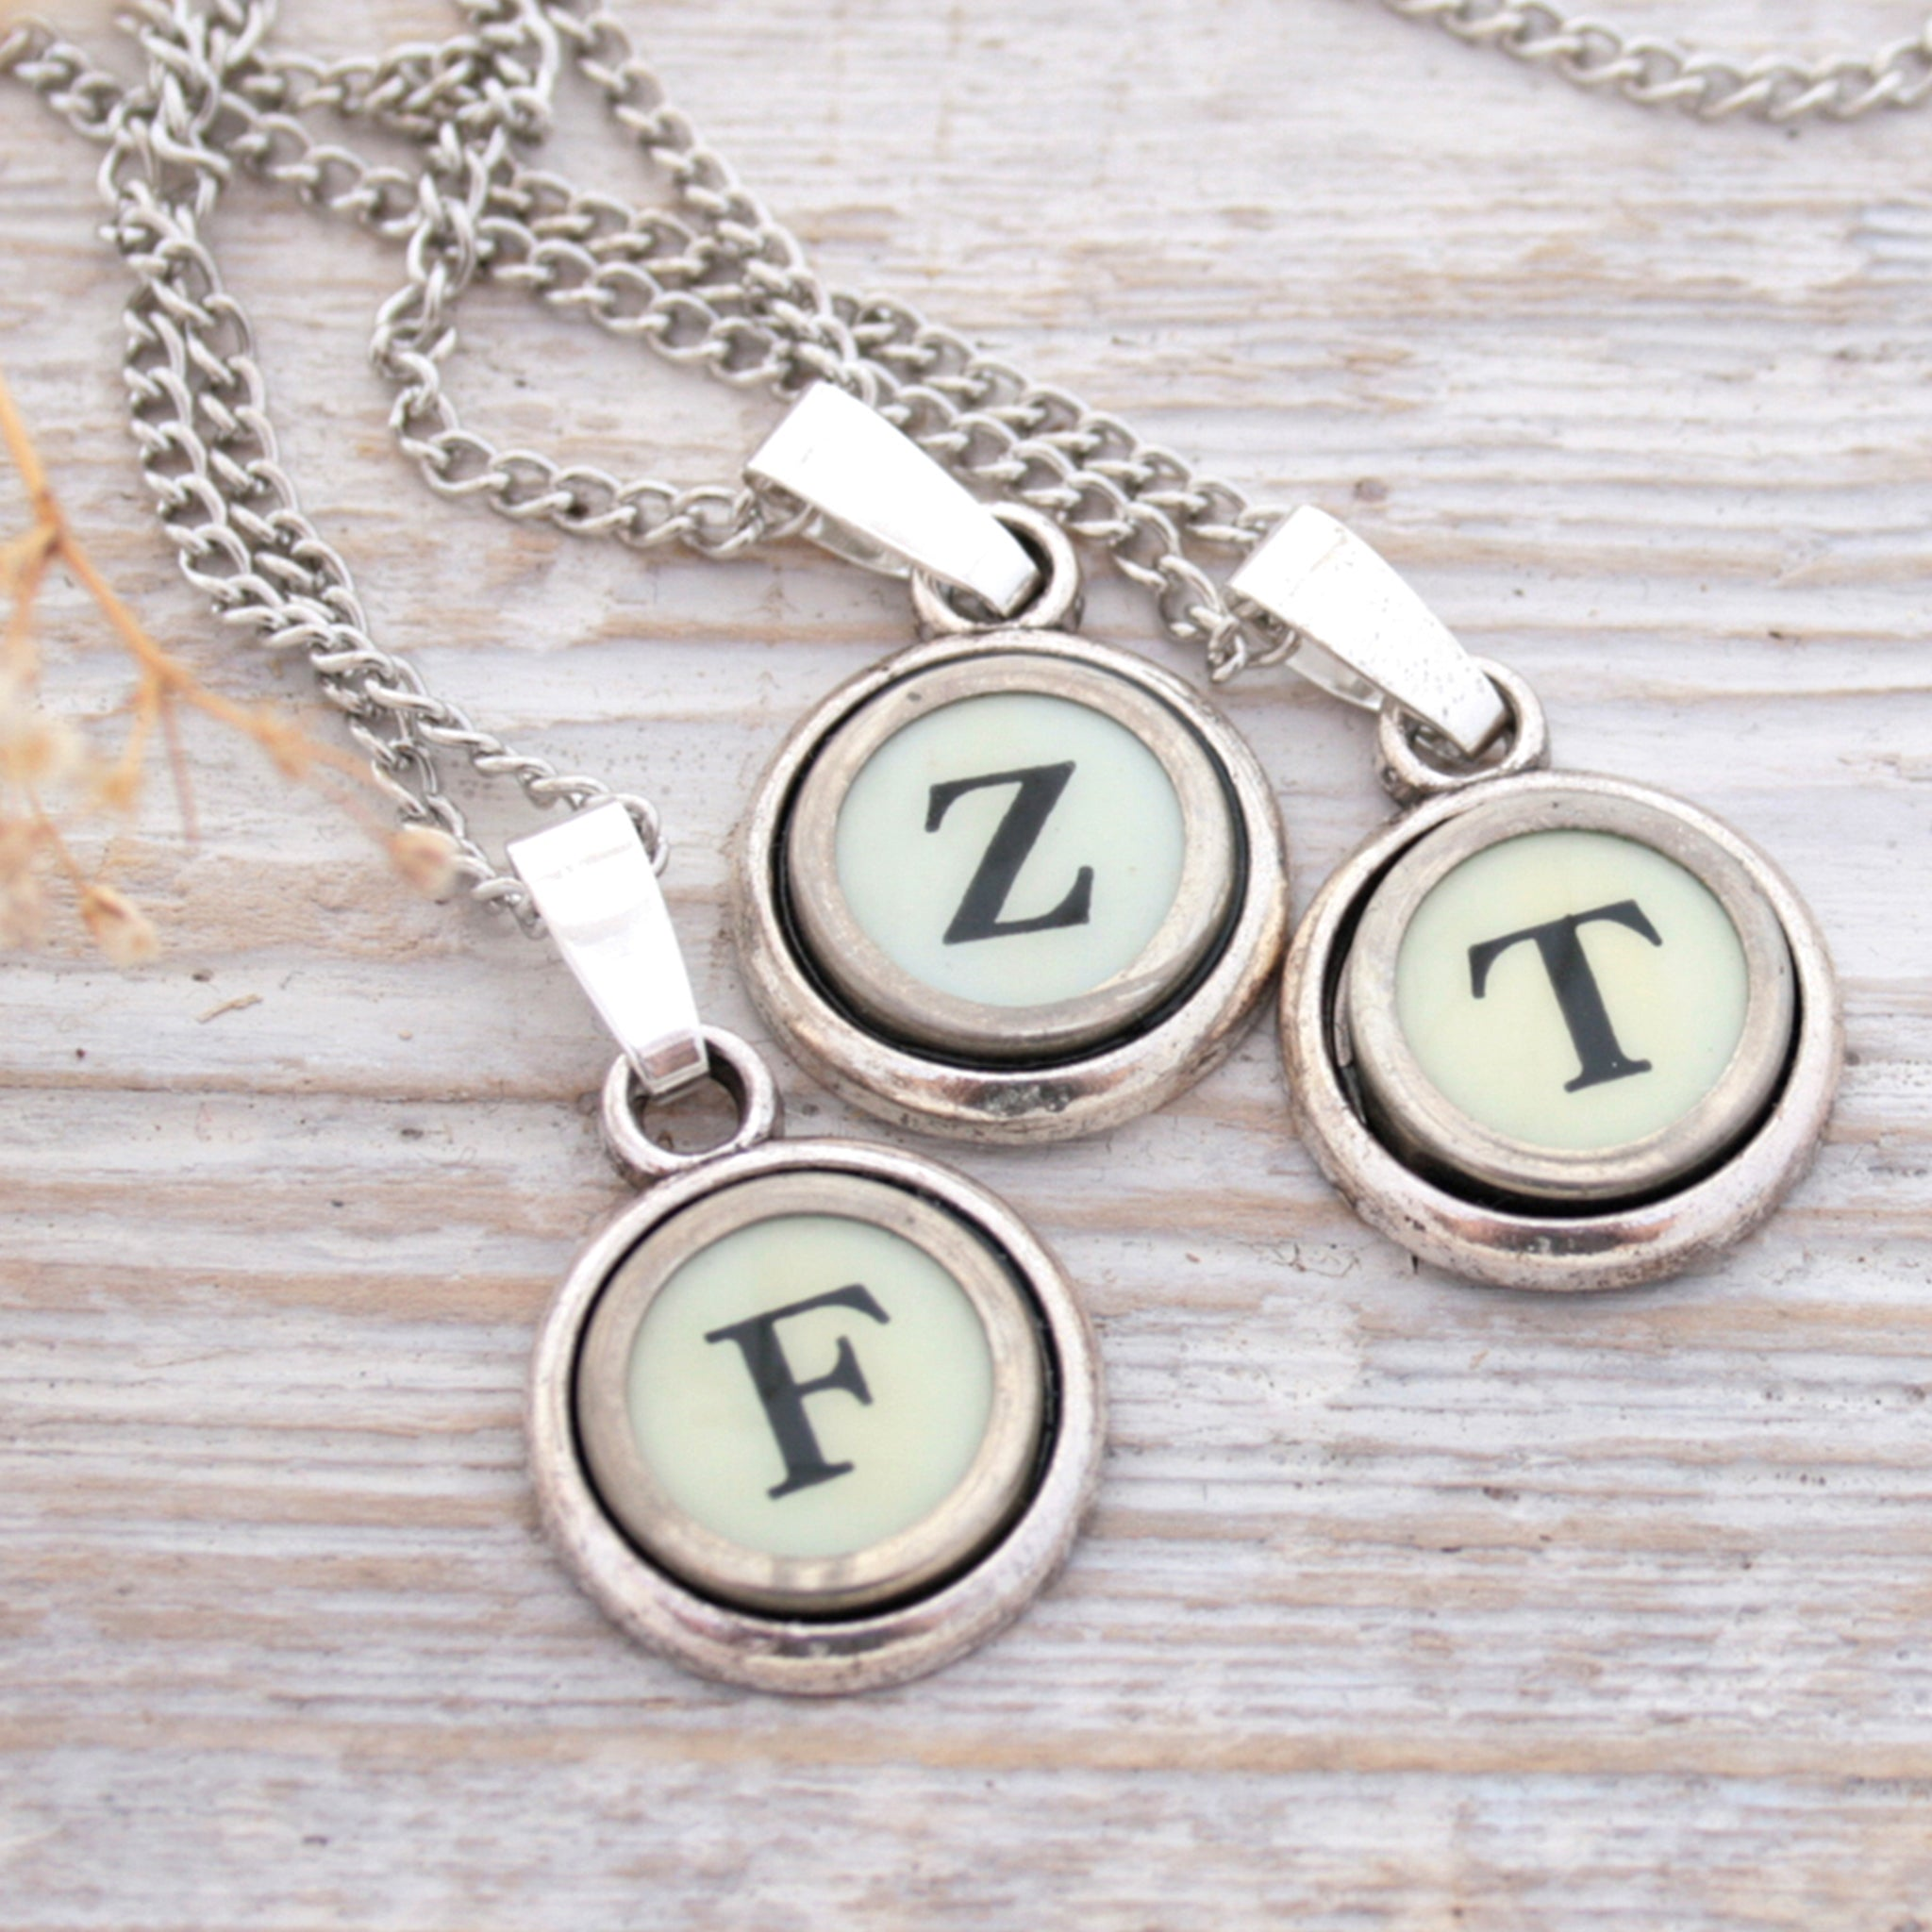 Ivory initial necklaces made of F, Z and T typewriter keys